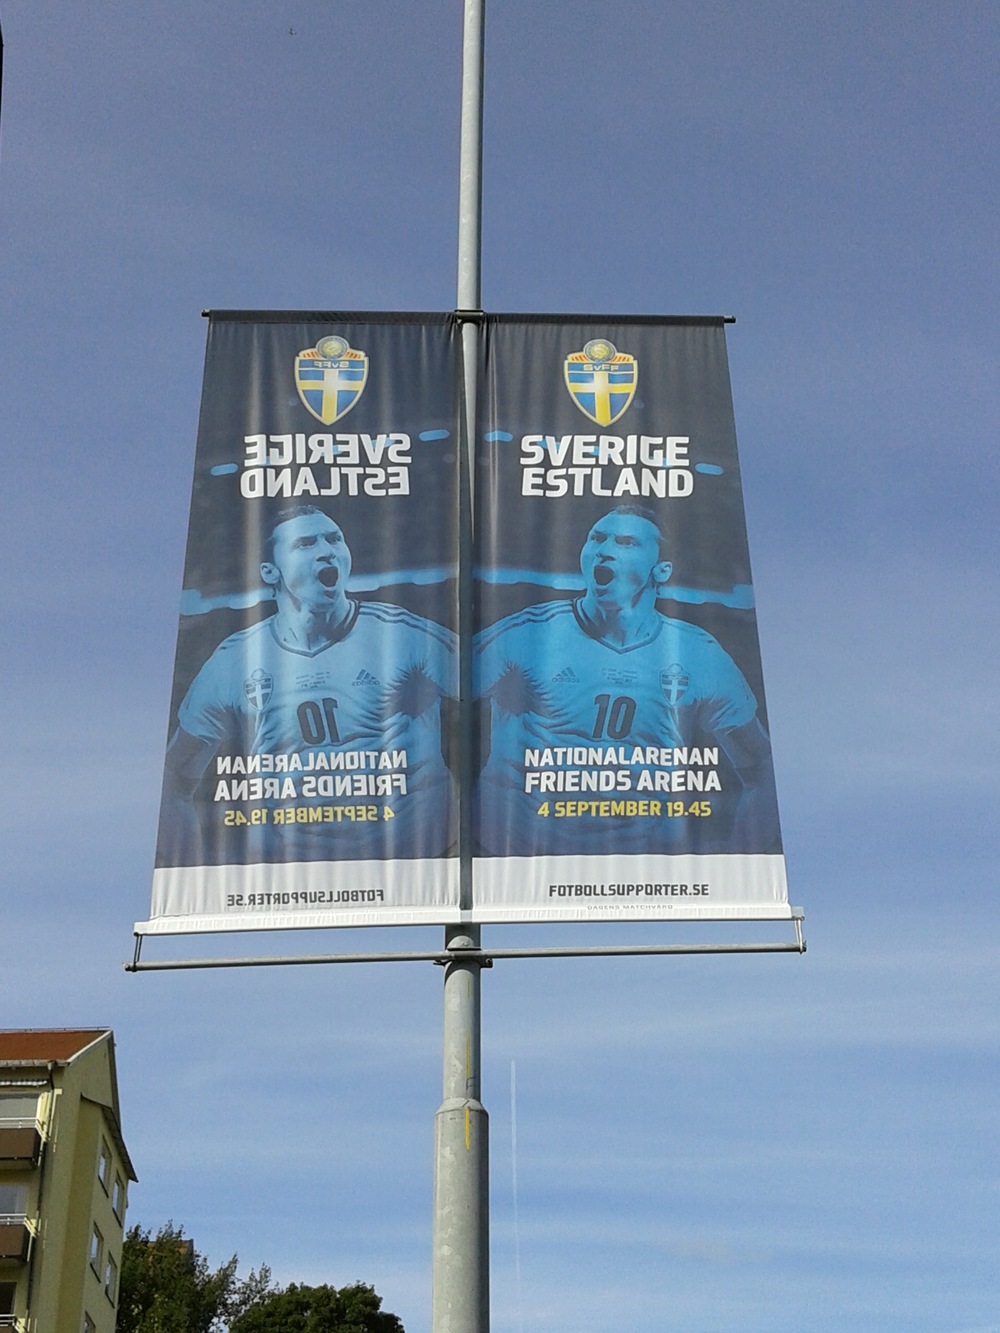 Zlatan is already all over on the way to the venue